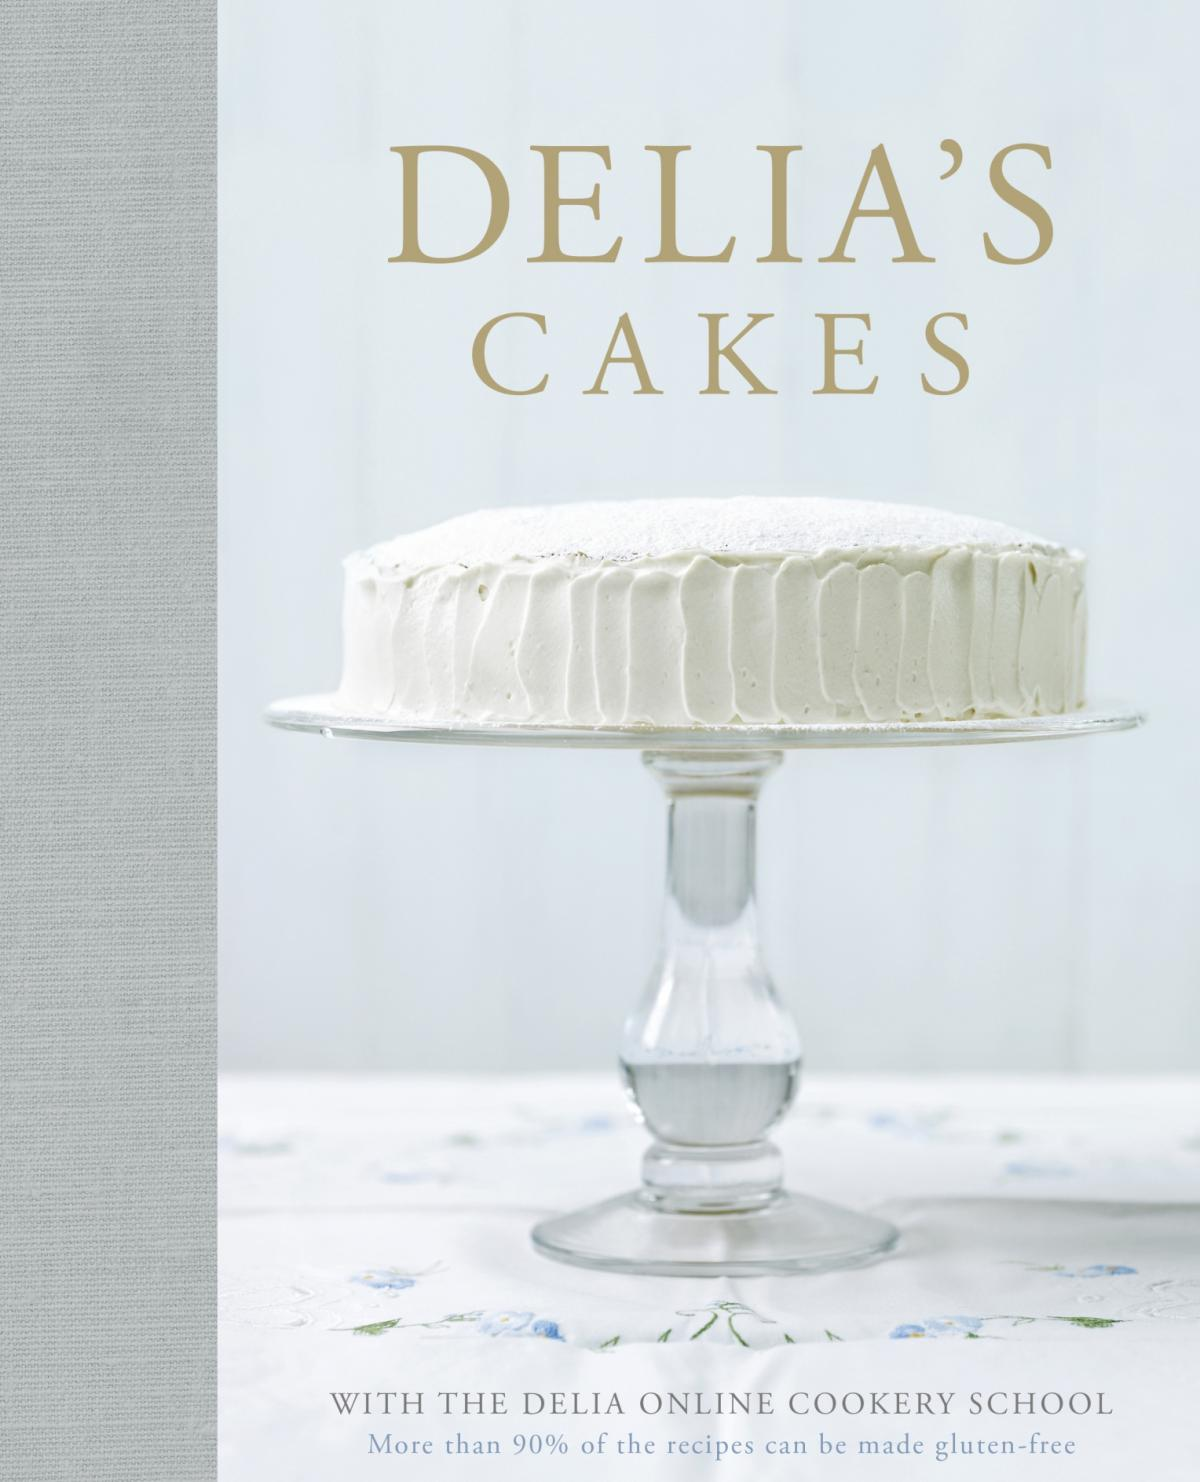 A picture of Delia's Delia's Cakes recipes